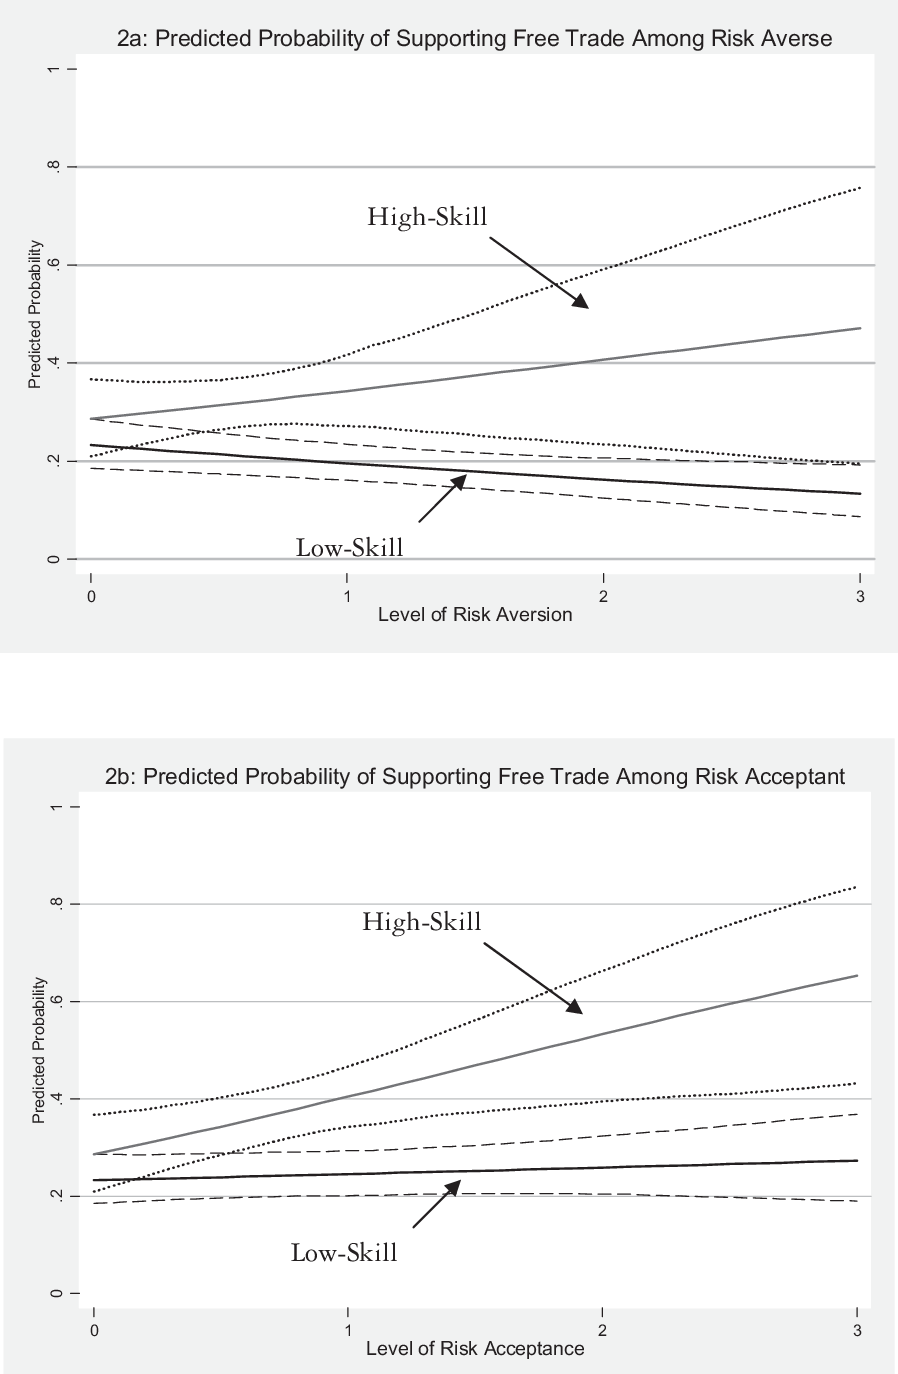 PDF] Risk Orientation, Risk Exposure, and Policy Opinions: The Case of Free  Trade | Semantic Scholar